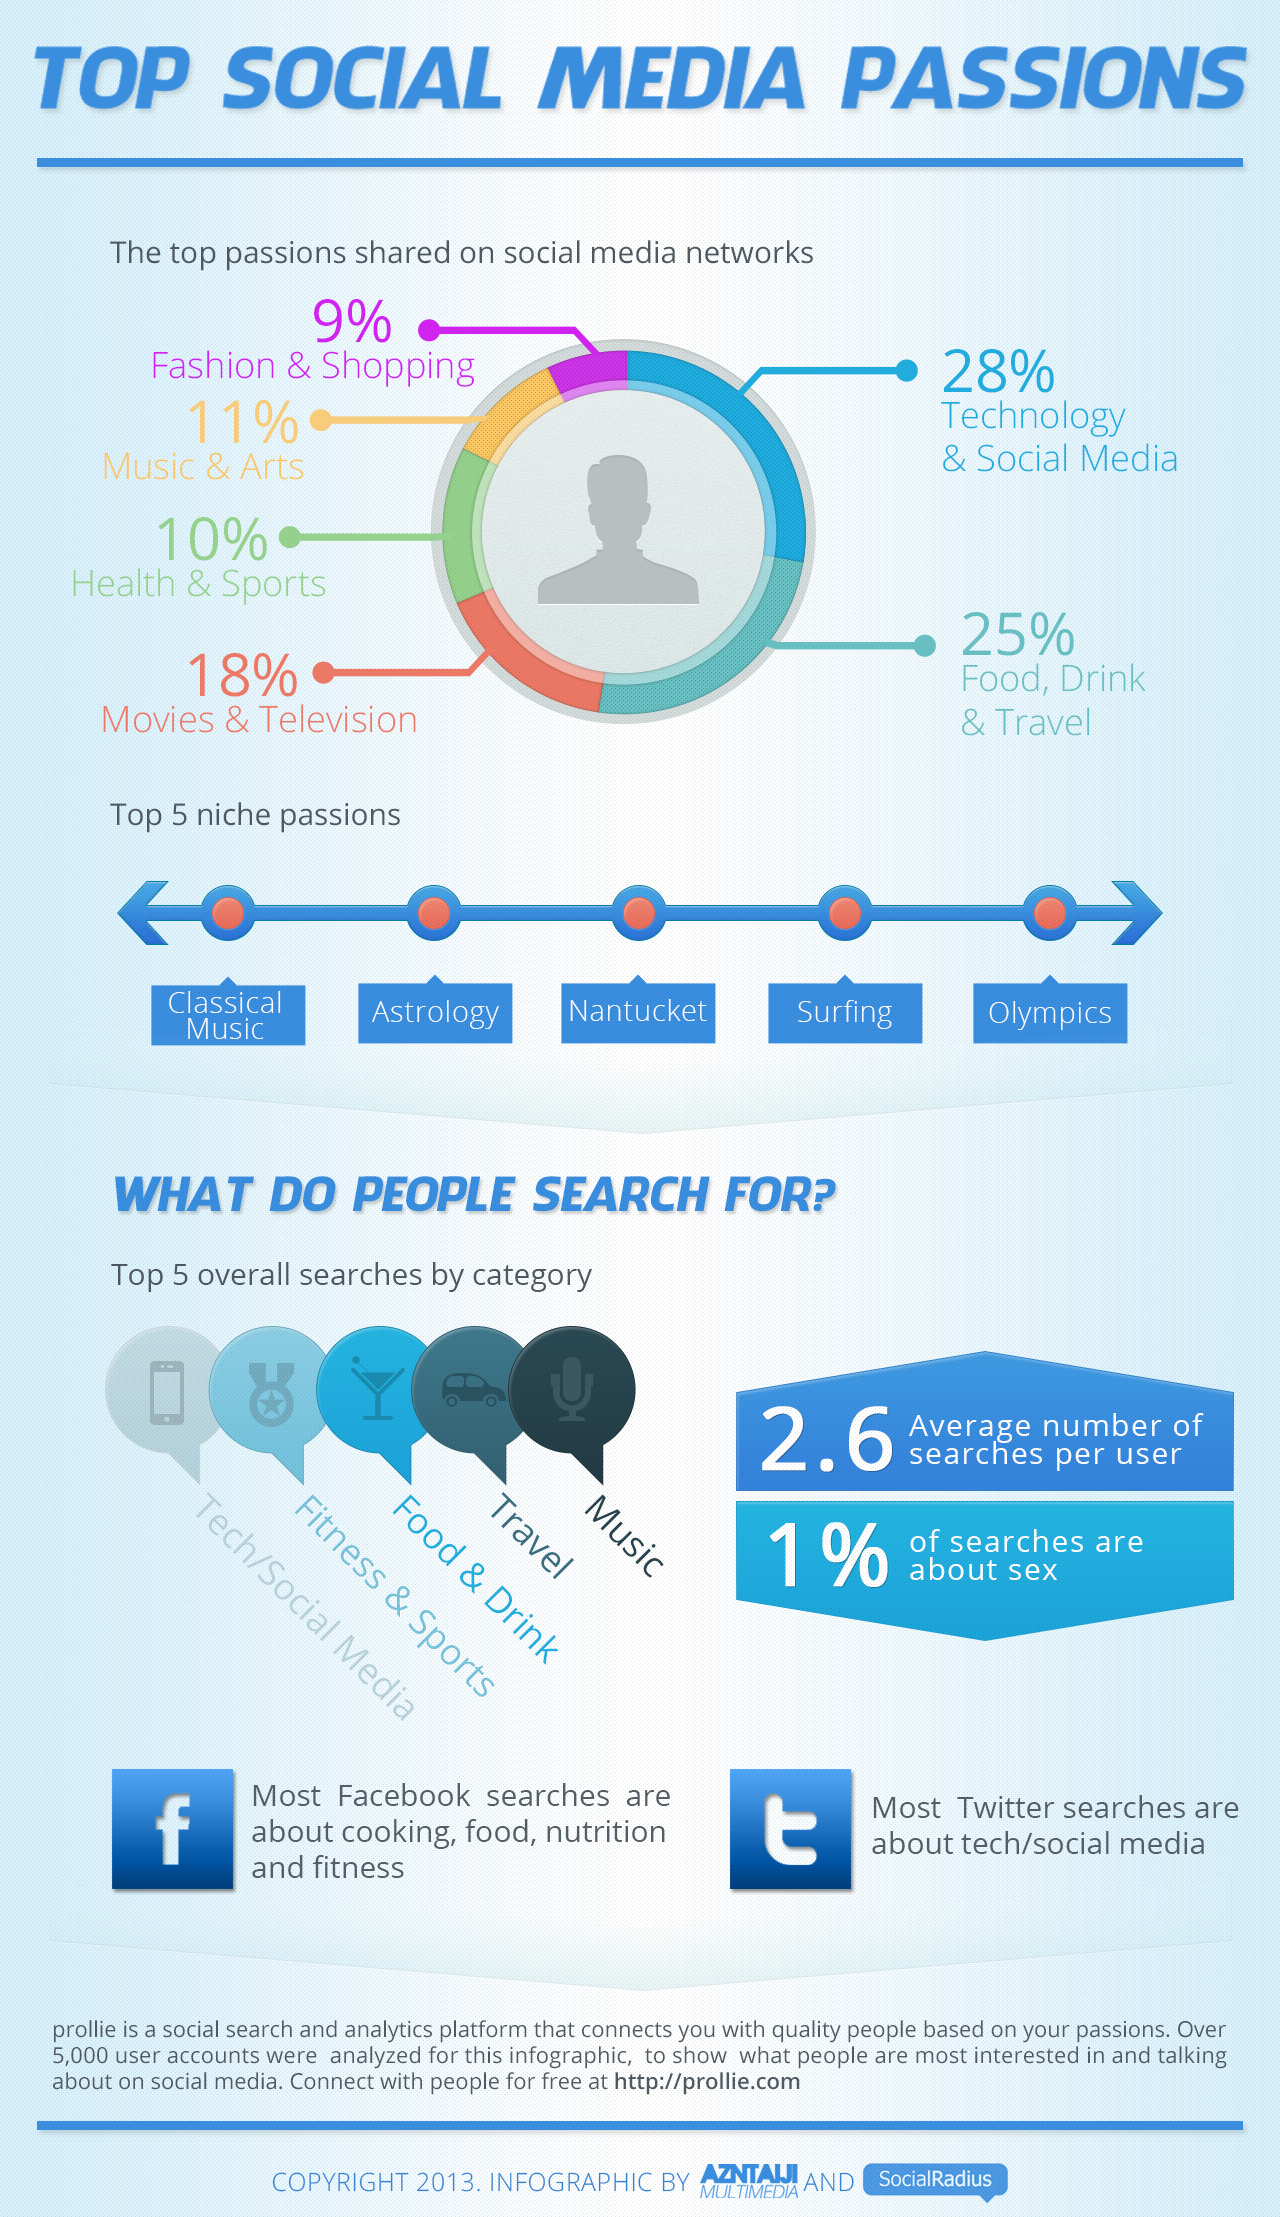 53% of Social Media Is Tech, Travel and Food [Infographic]